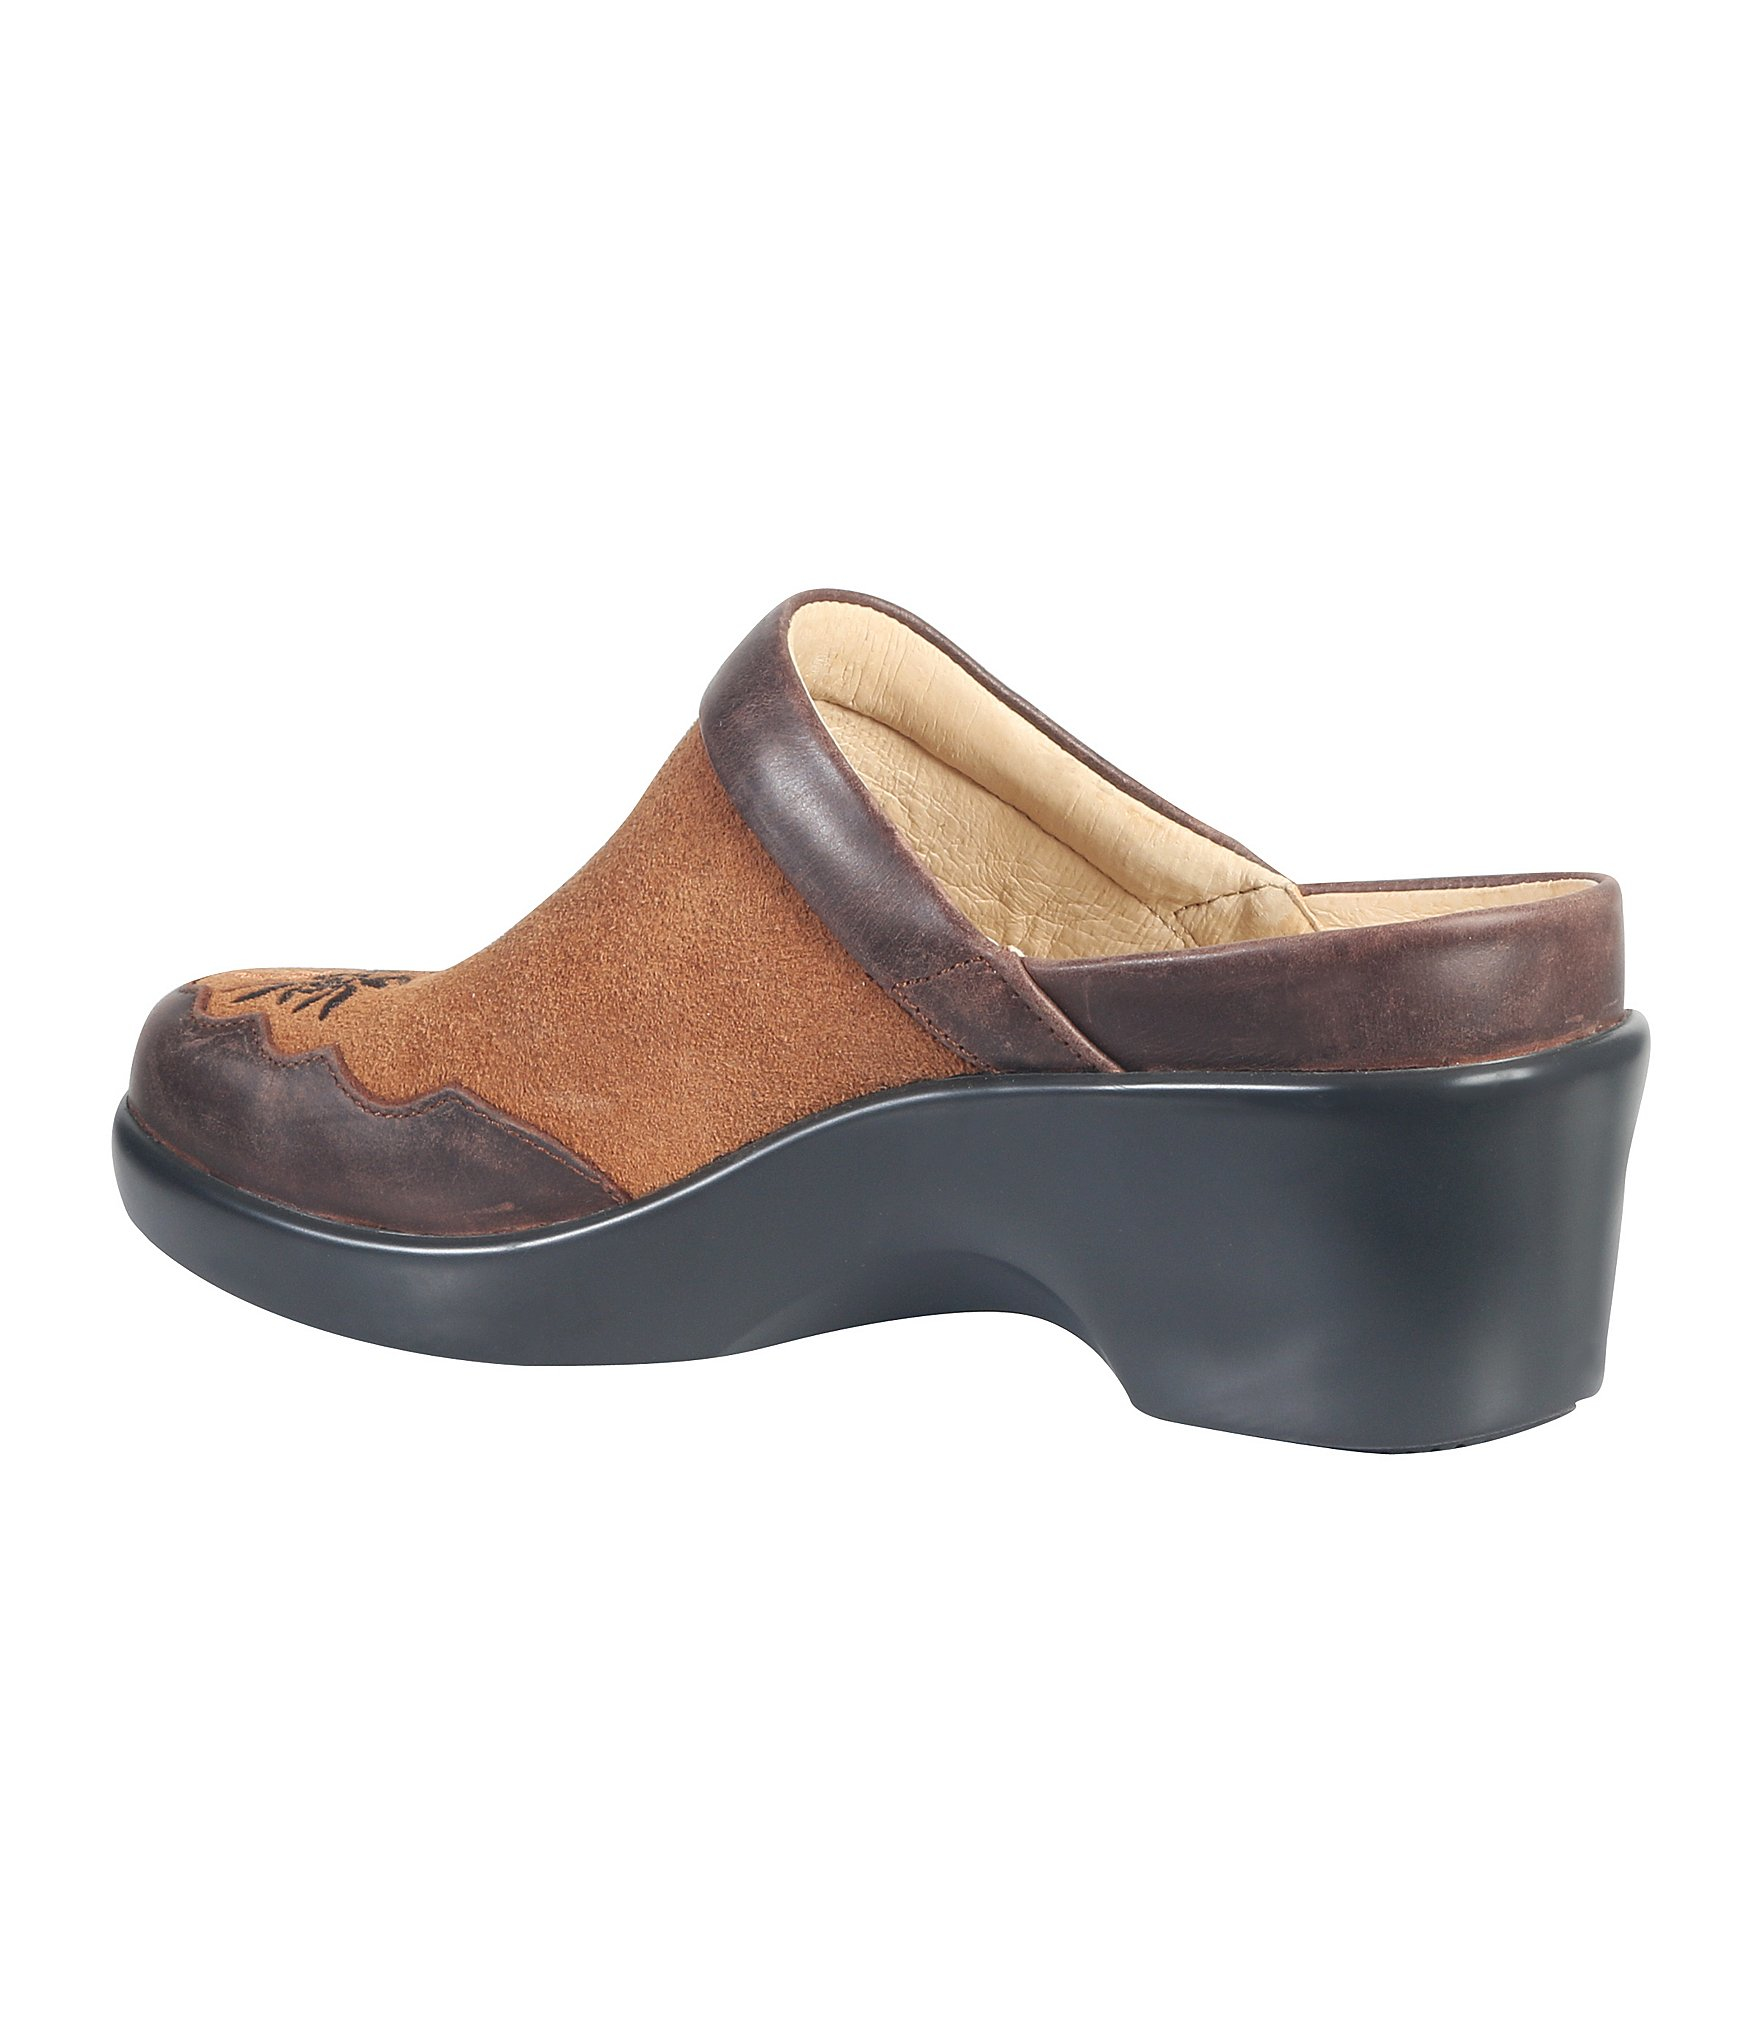 alegria isabelle wedge clogs in brown lyst. Black Bedroom Furniture Sets. Home Design Ideas